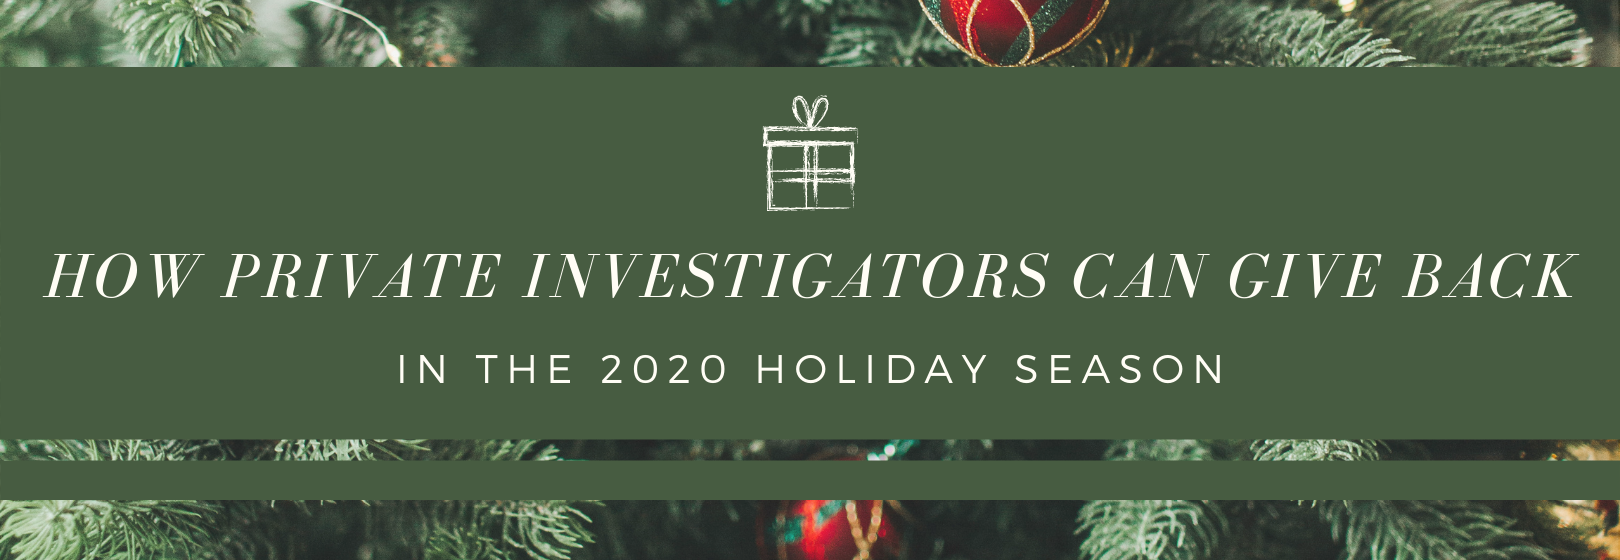 How Private Investigators Can Give Back in the 2020 Holiday Season